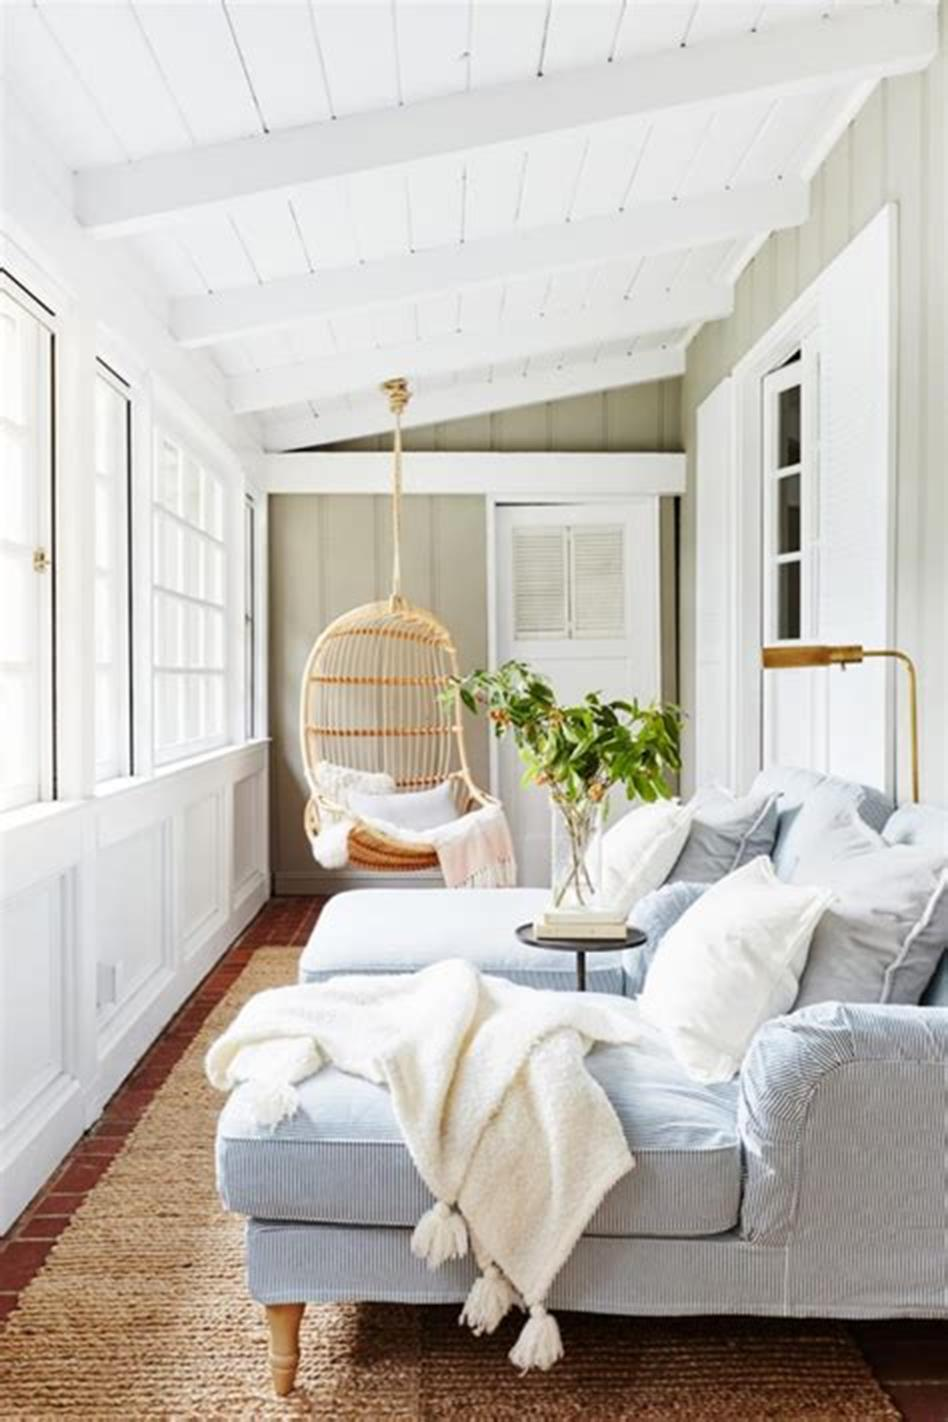 50 Most Popular Affordable Sunroom Design Ideas on a Budget 9